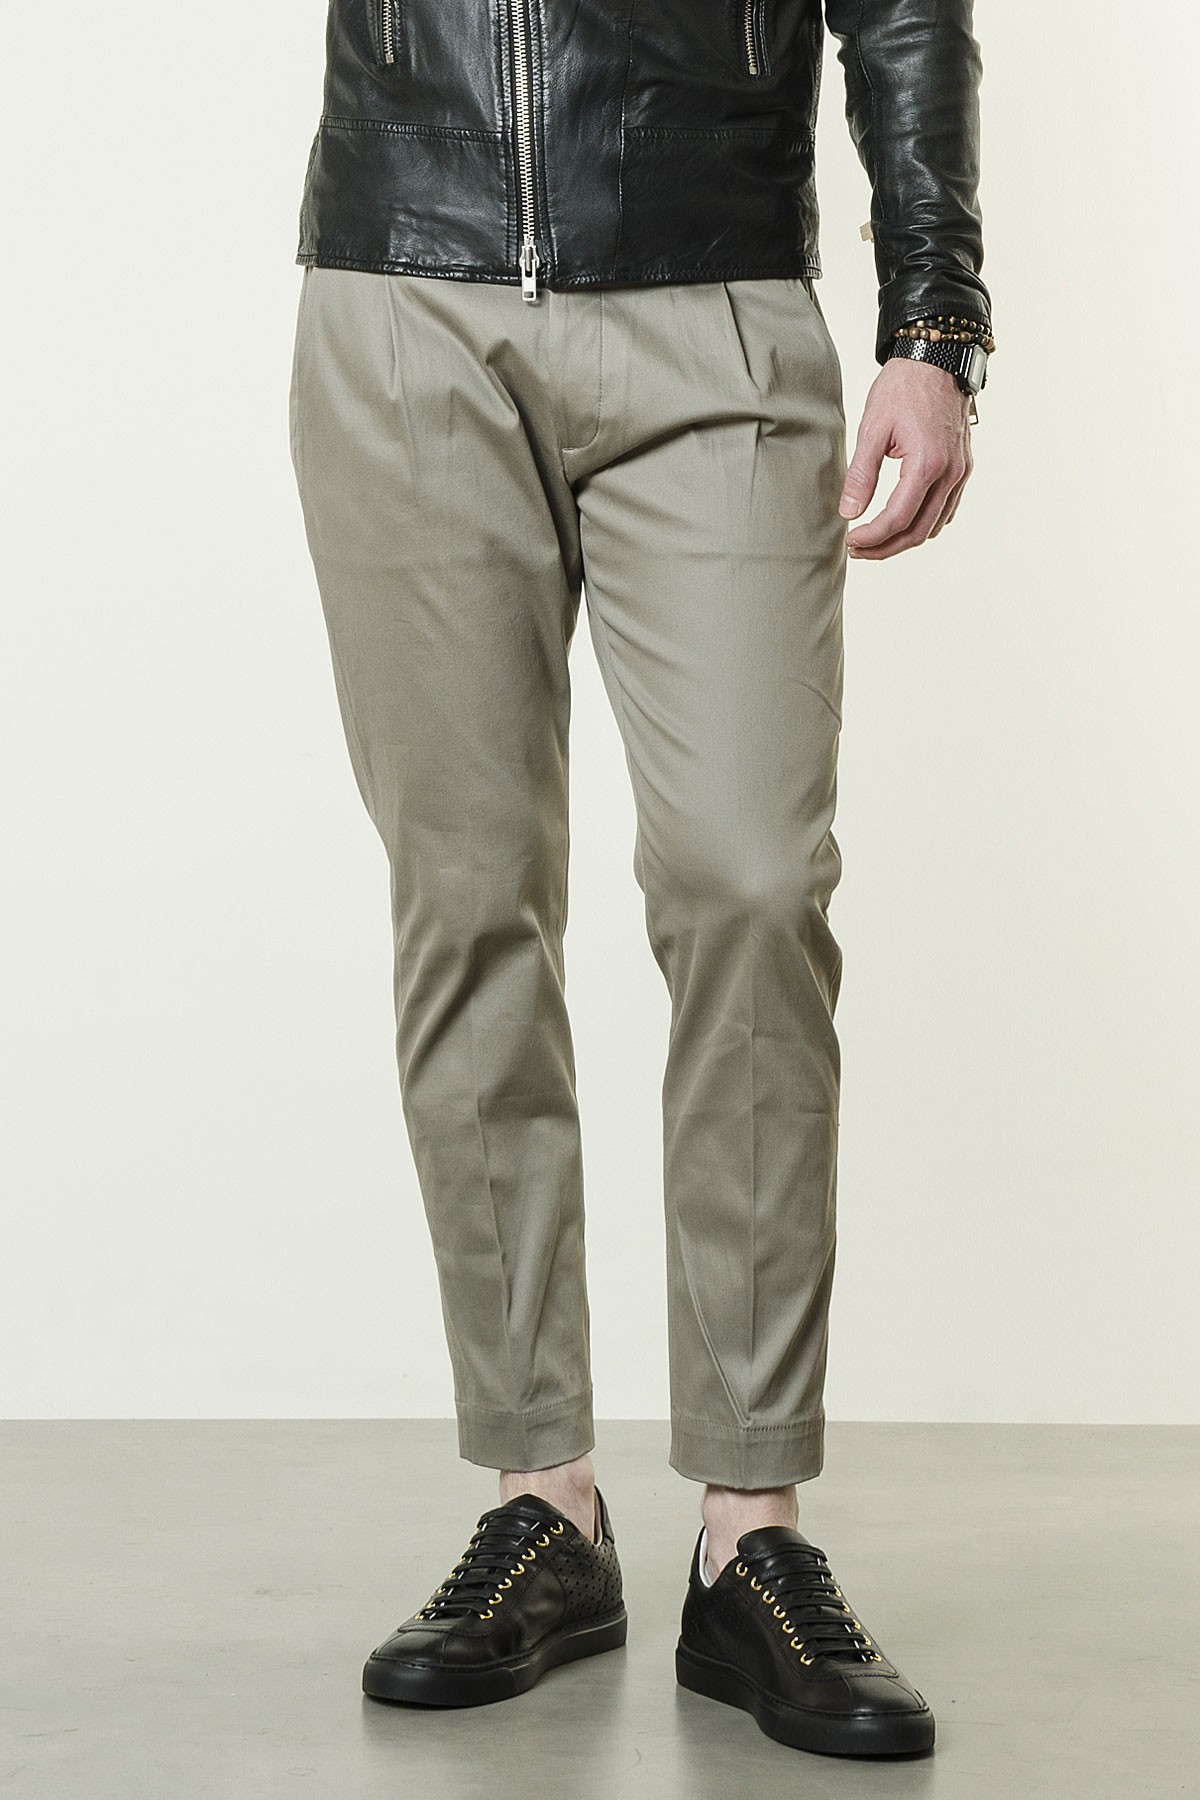 f69372d8d2f Trousers for man NINE IN THE MORNING S/S17 - Rione Fontana